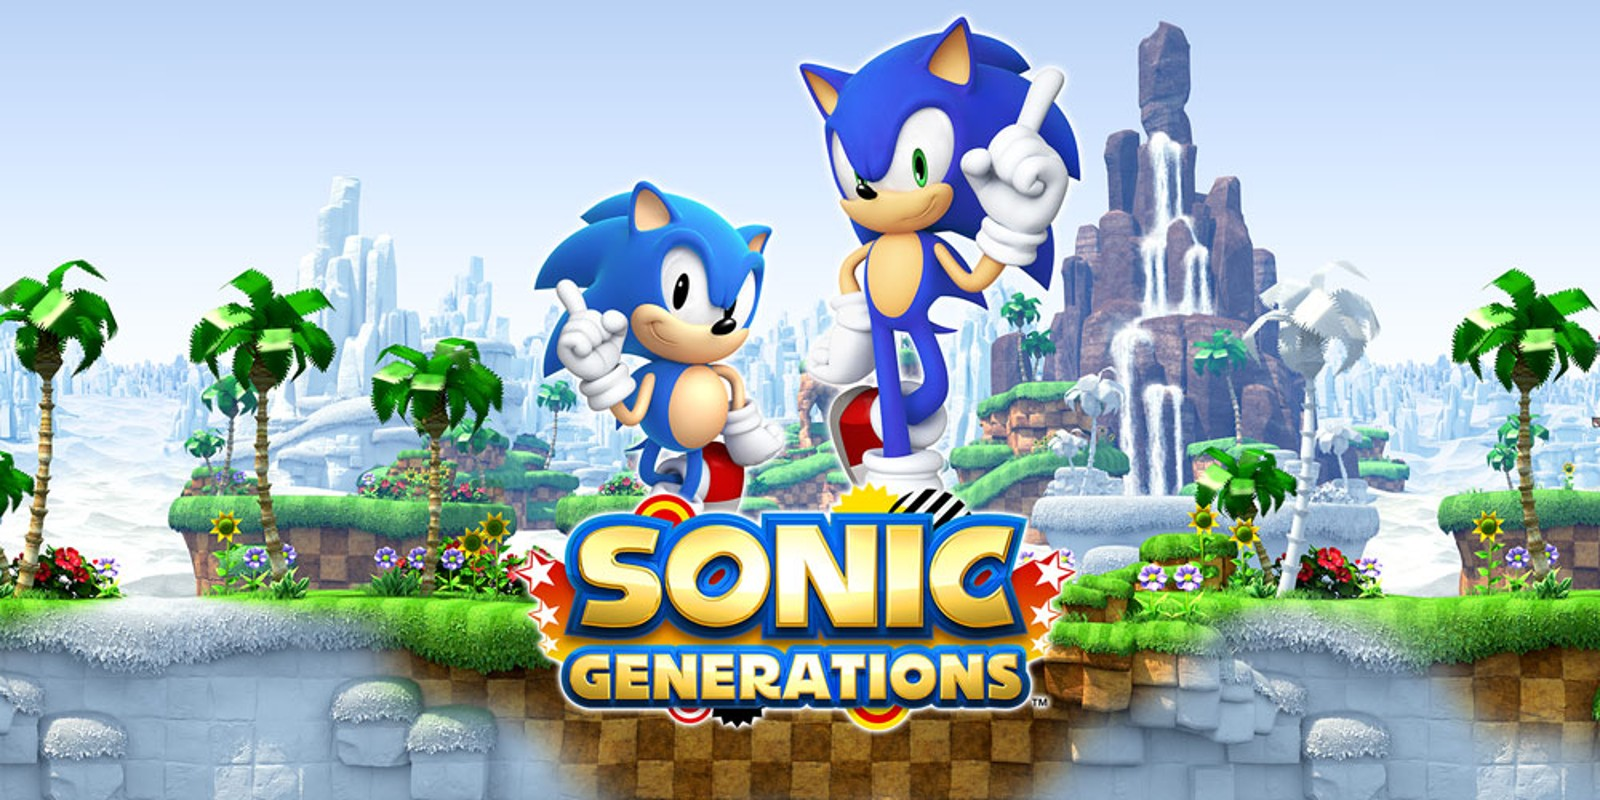 SI_3DS_SonicGenerations_image1600w